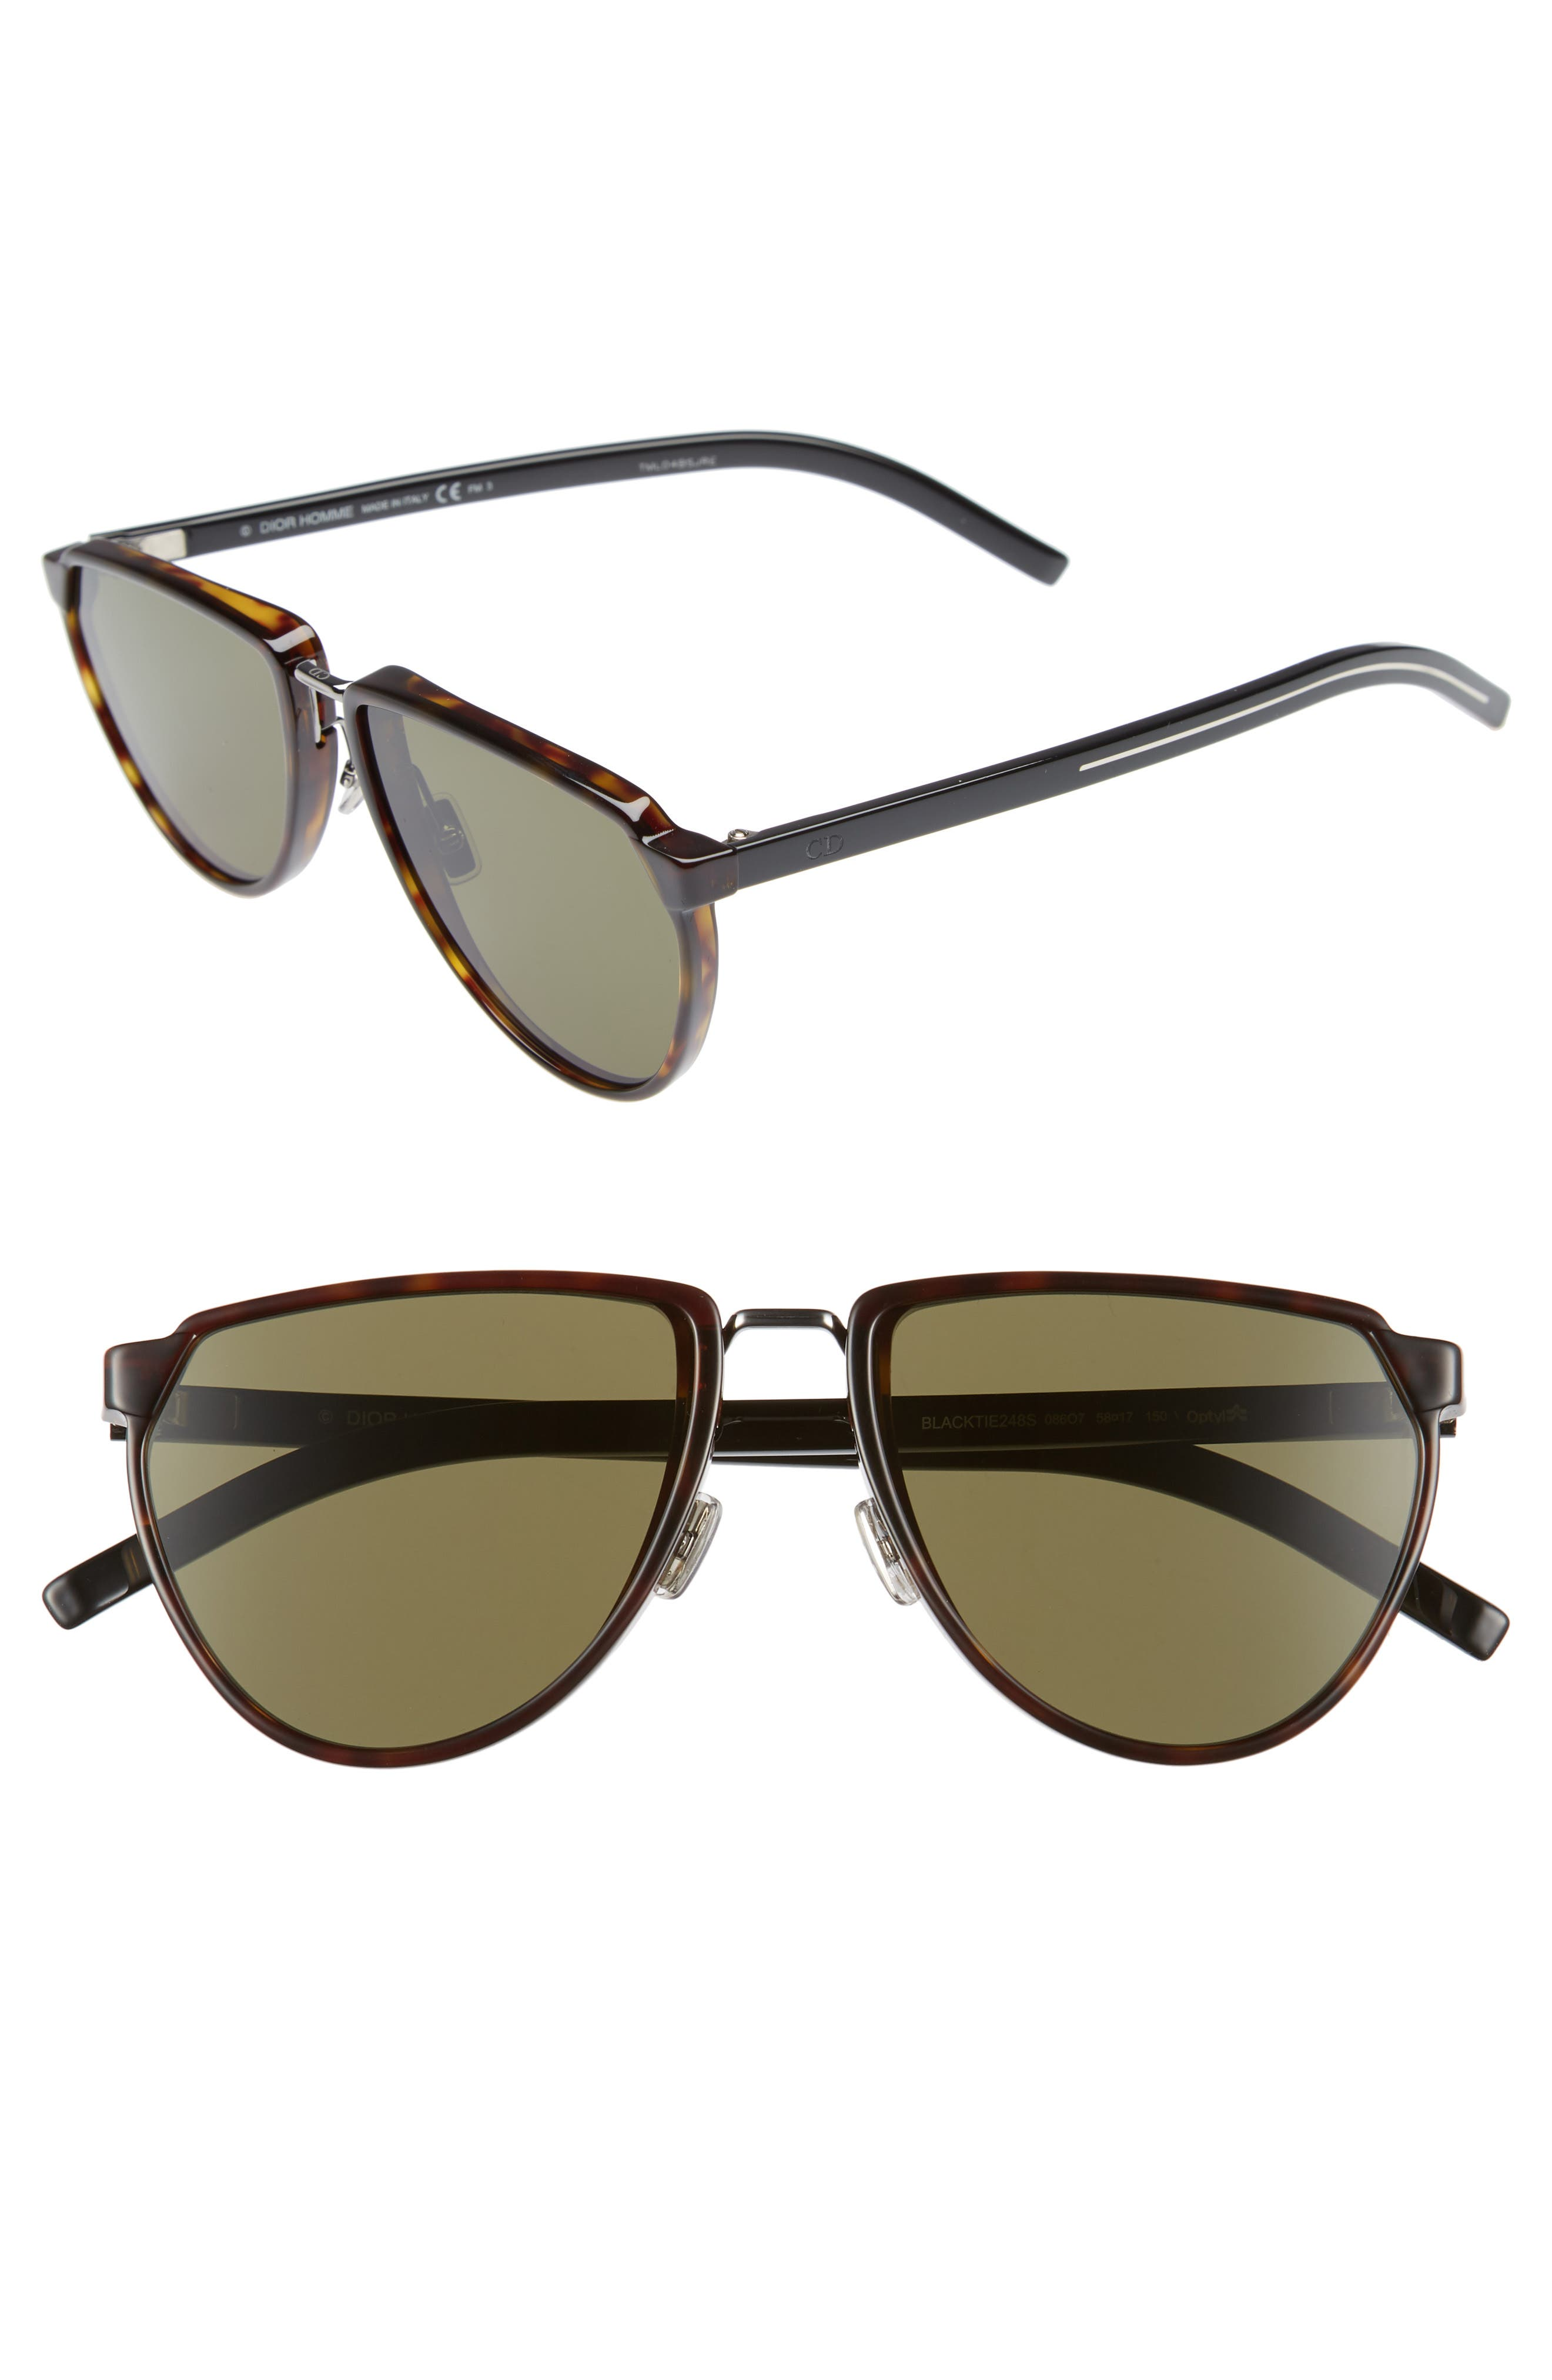 Dior Homme 58mm Sunglasses